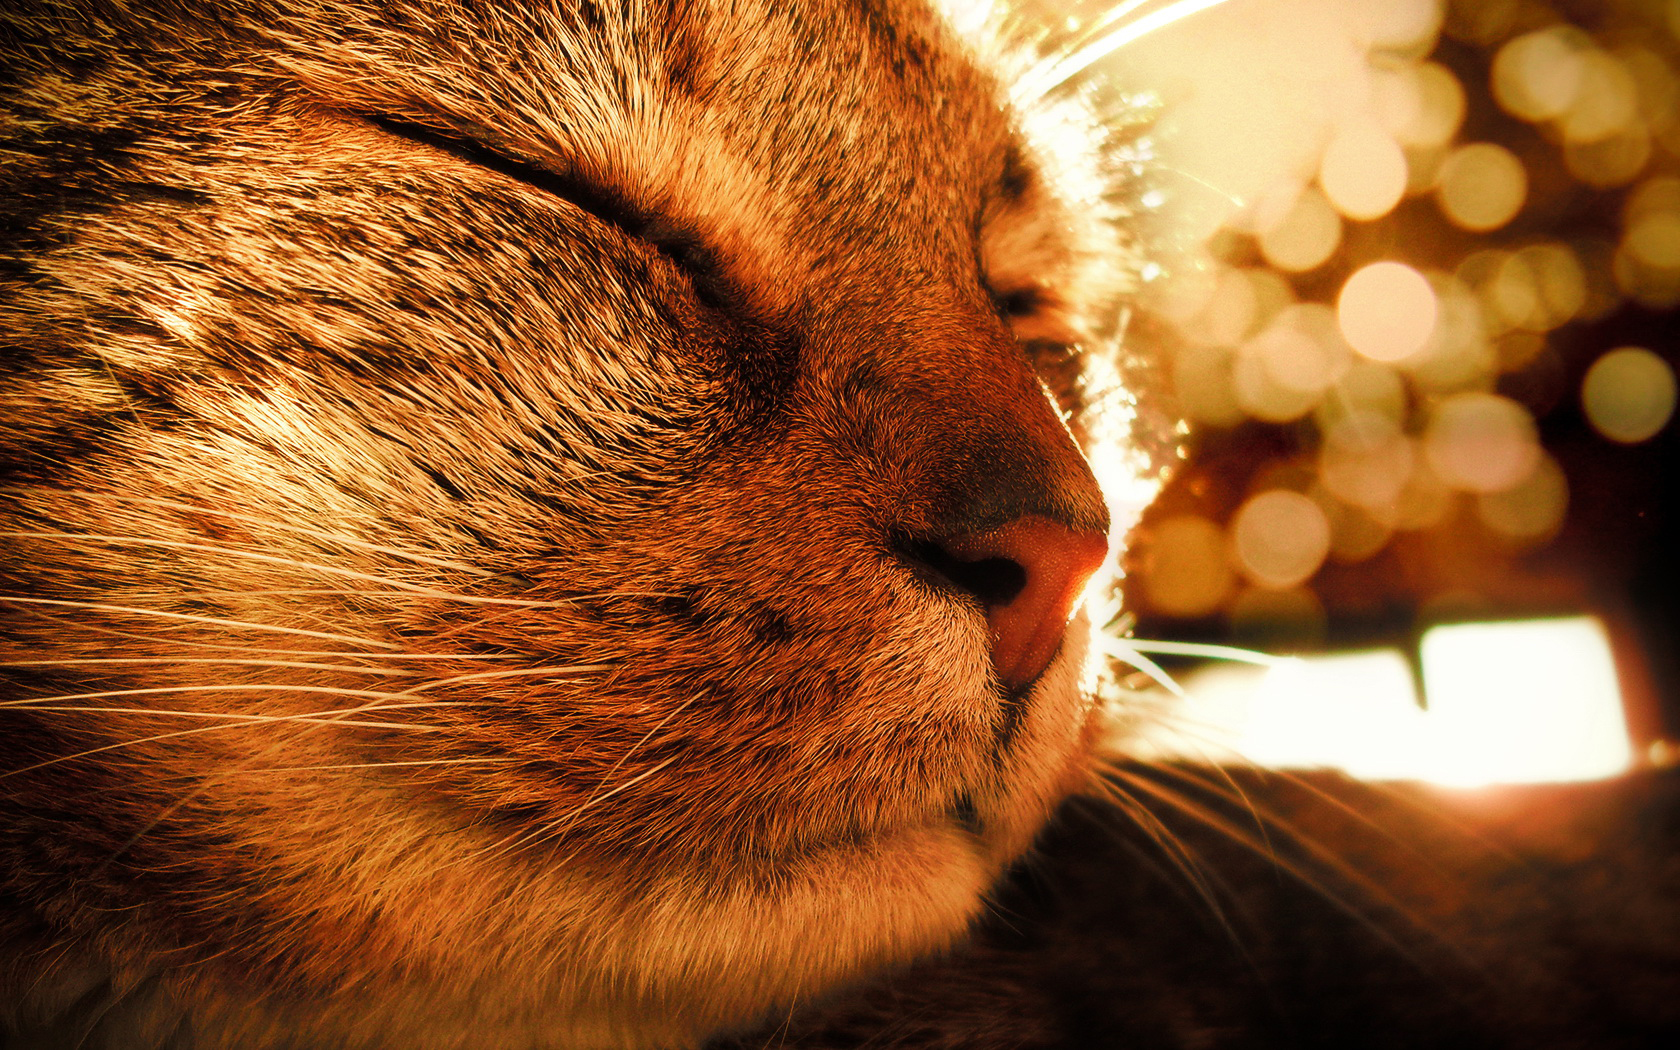 background sleep soundly small cat wallpaper   Animal Wallpapers 481